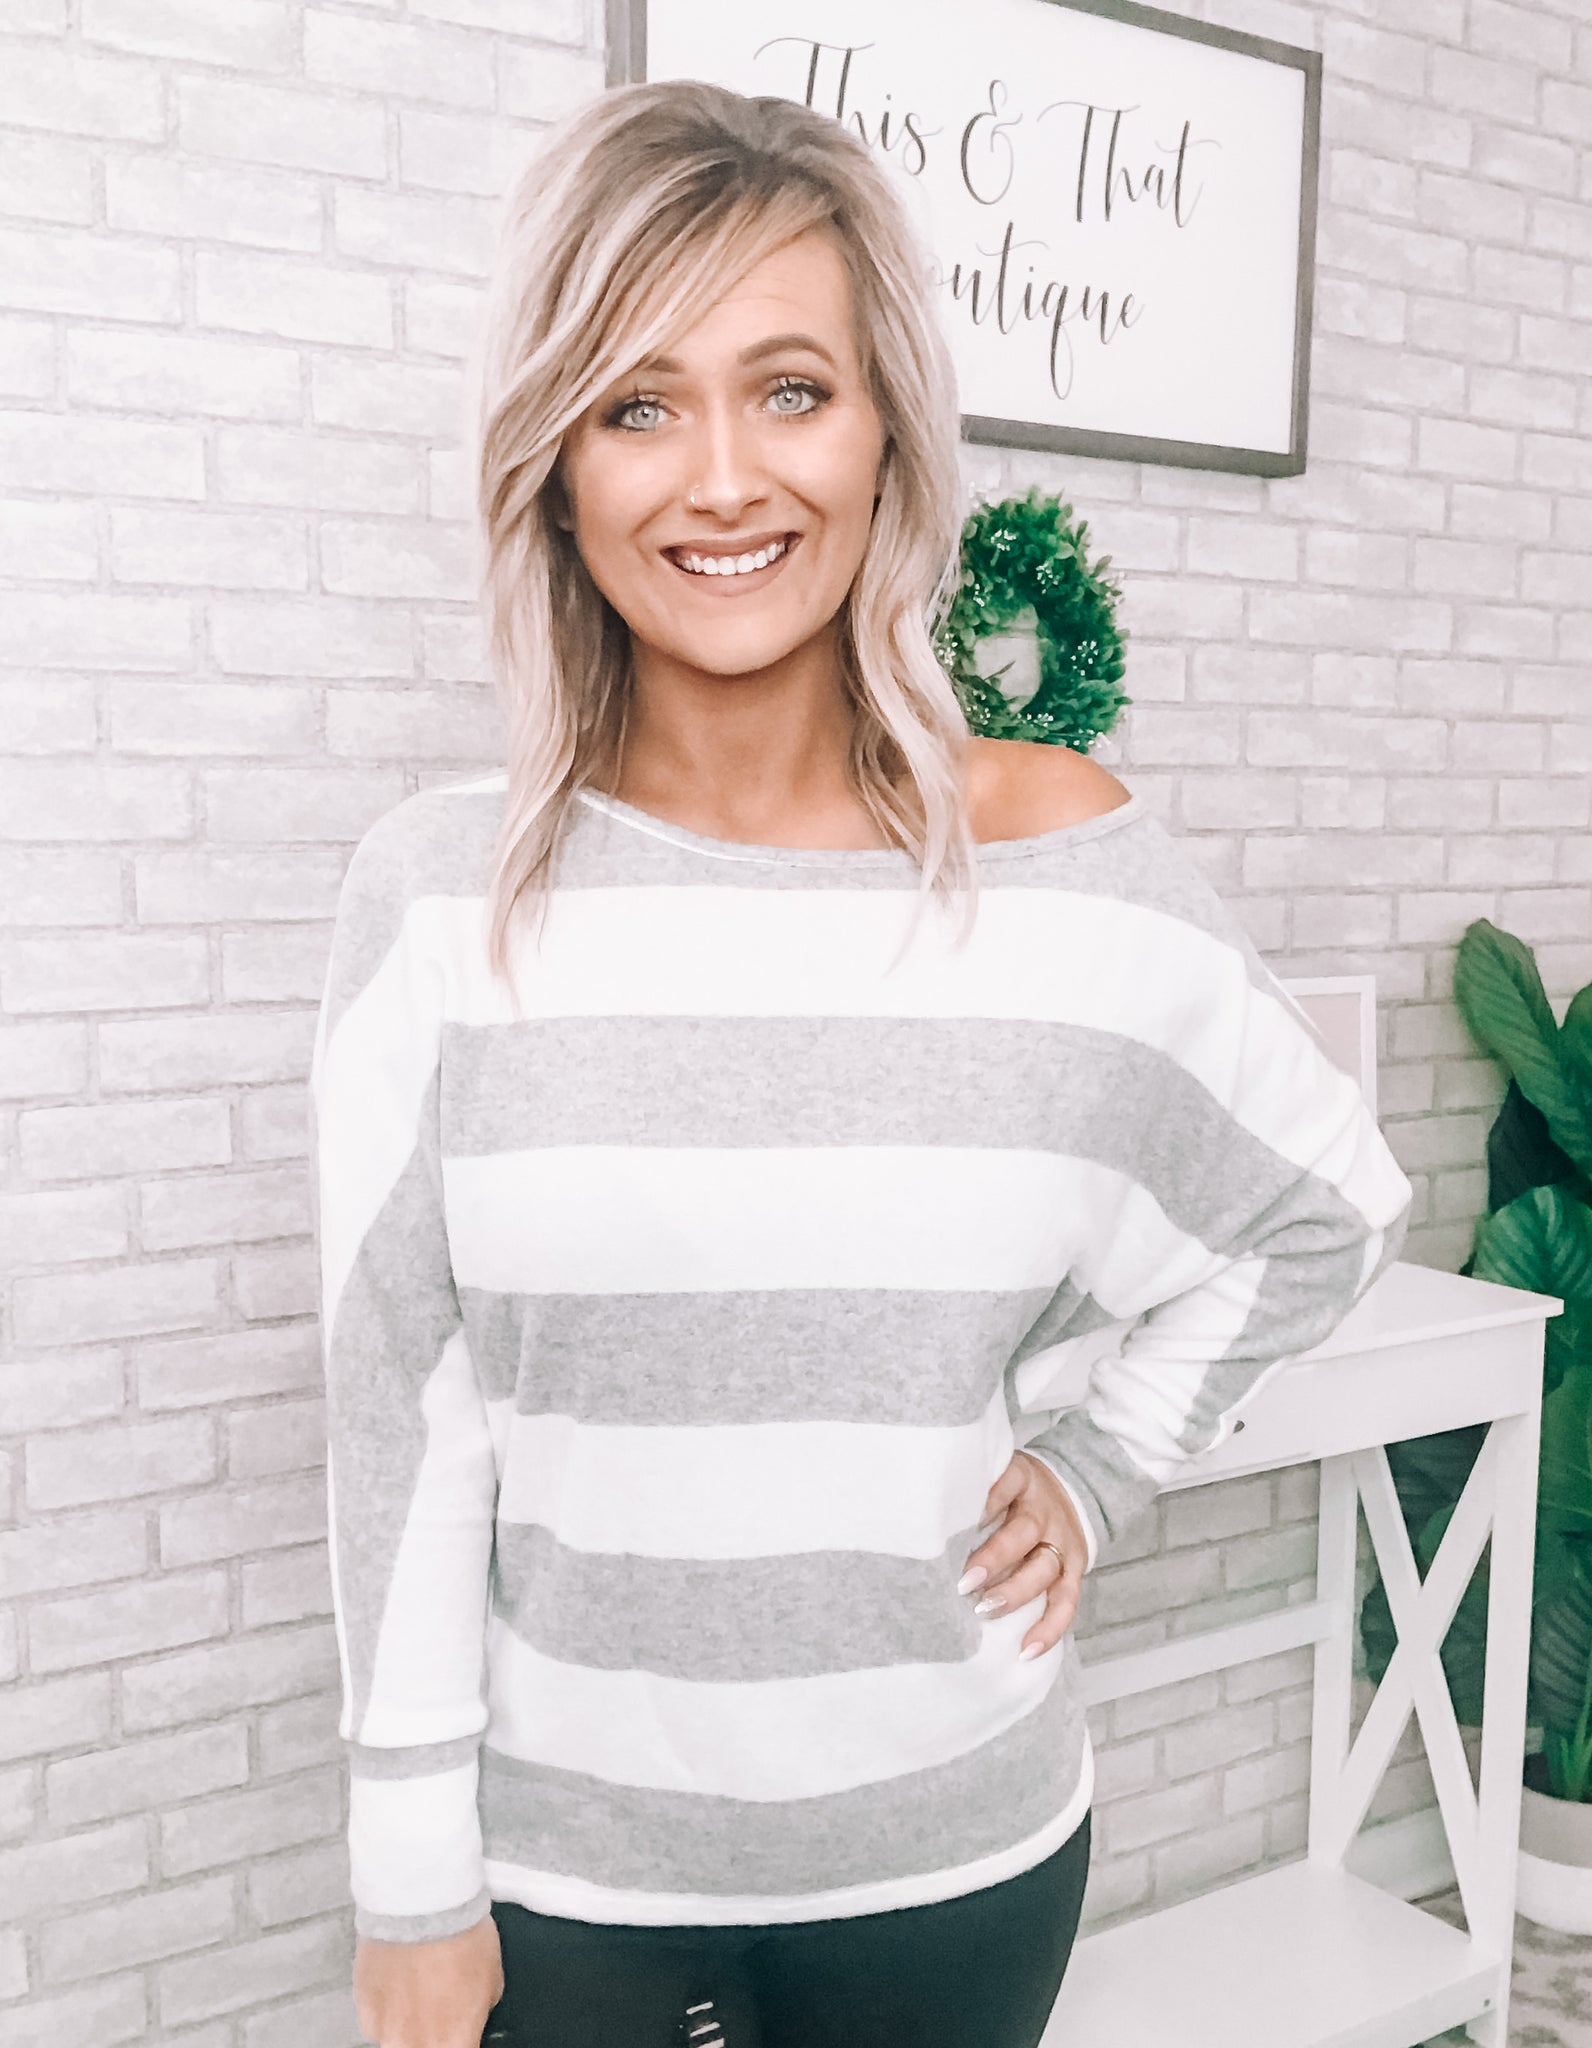 White & Grey Striped Top - This & That Boutique Shop